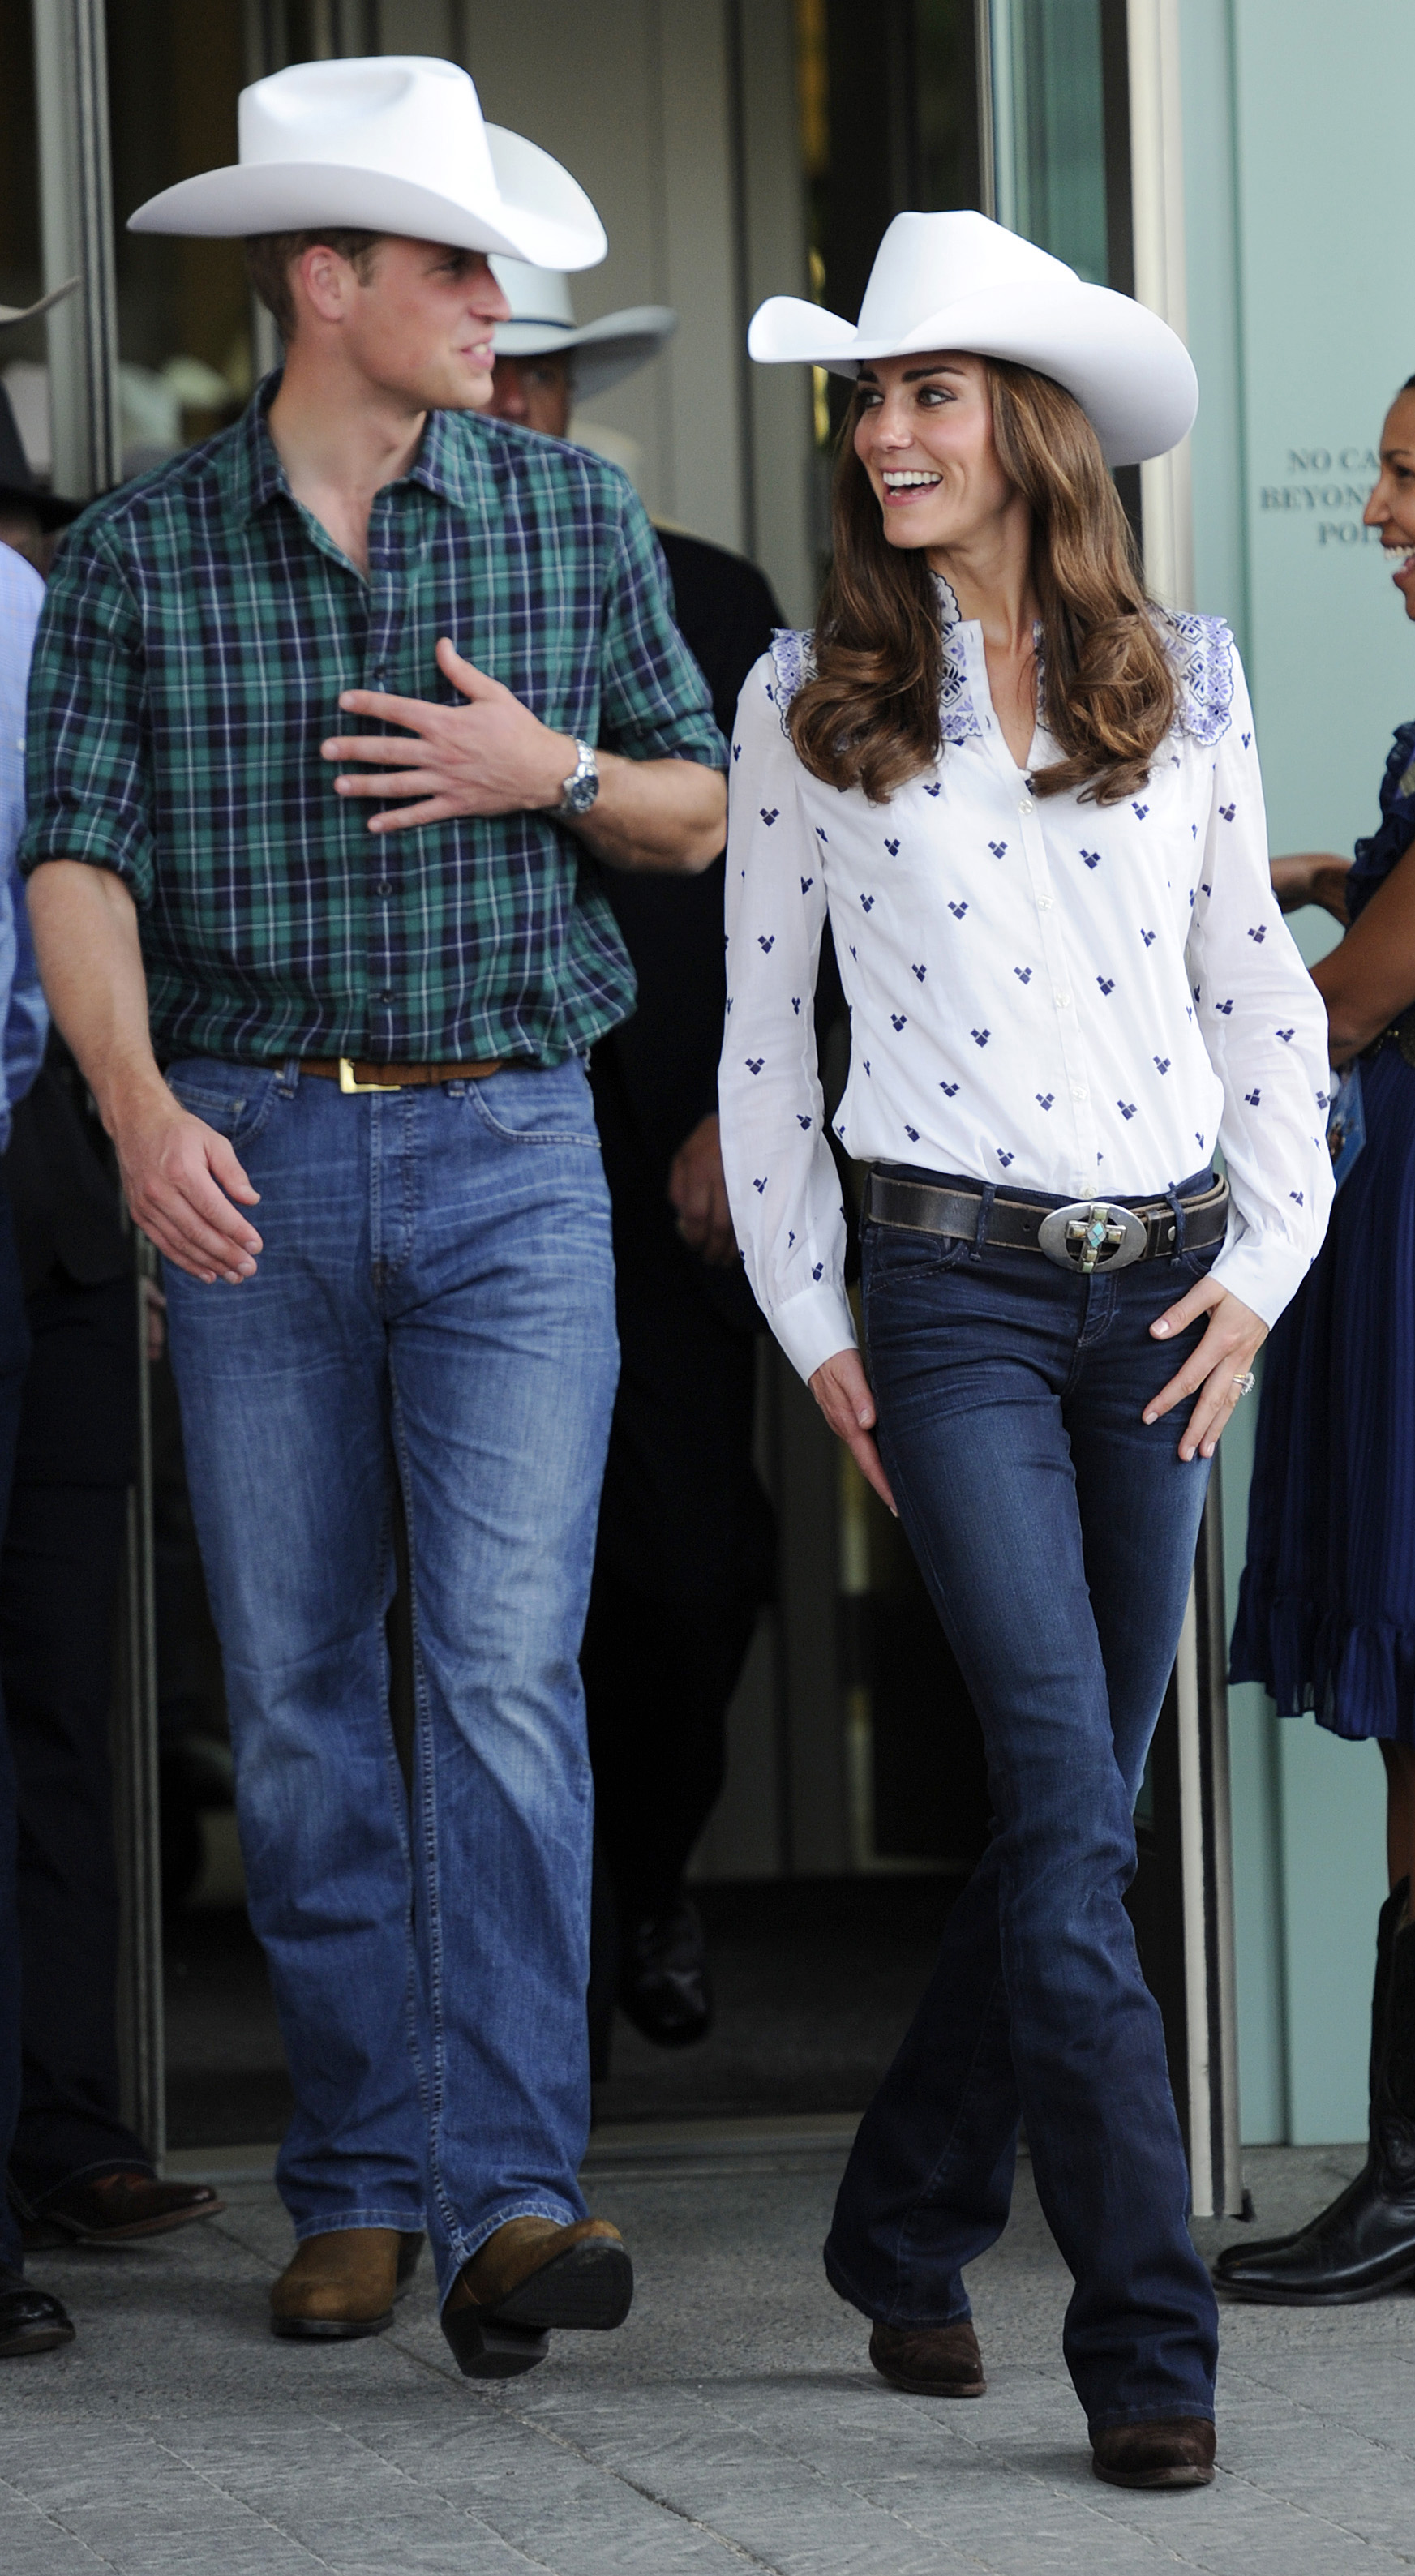 <strong>Cowgirl Kate</strong>                                   In Calgary, Canada, the Duchess attended a government reception at the BMO Centre on July 7, 2011. She looked all-American in her cowboy hat, boots and bold belt buckle.